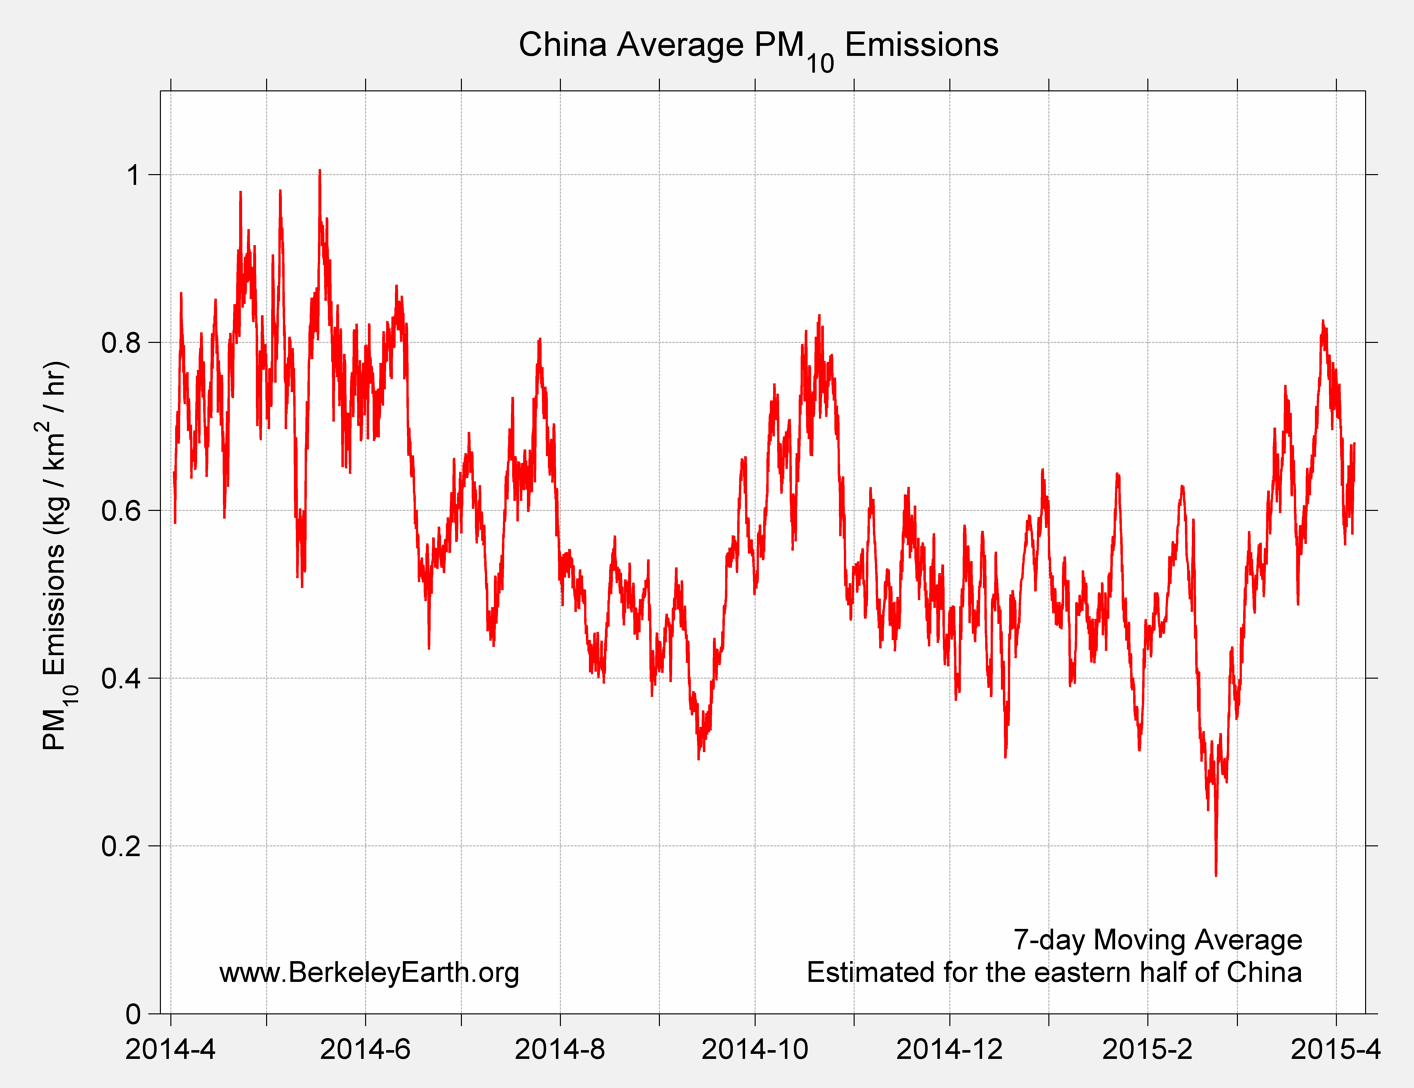 China_pm10_Average_Emission_TimeSeries